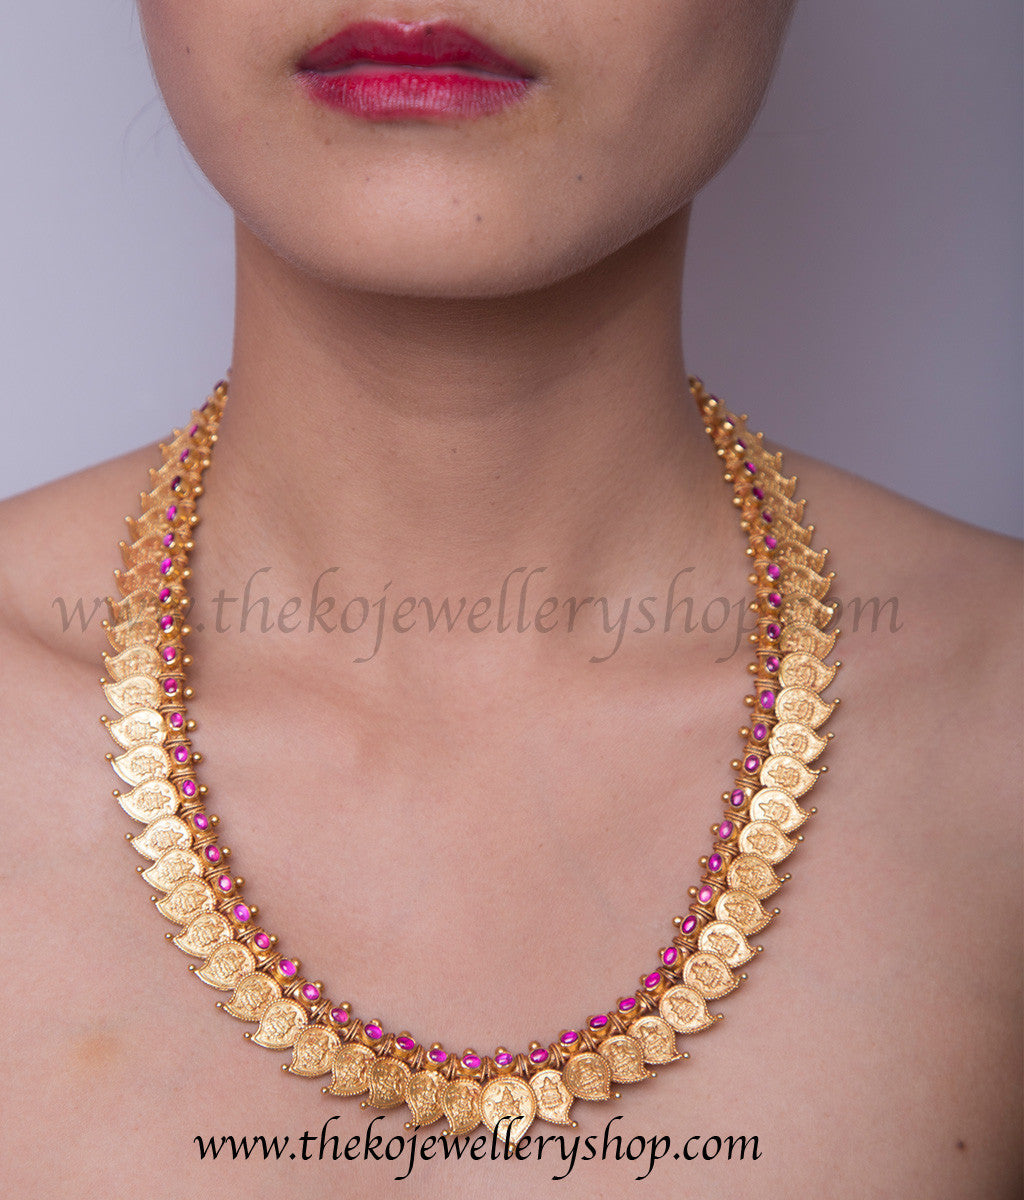 Temple jewellery buy authentic temple jewelry designs for Designs com